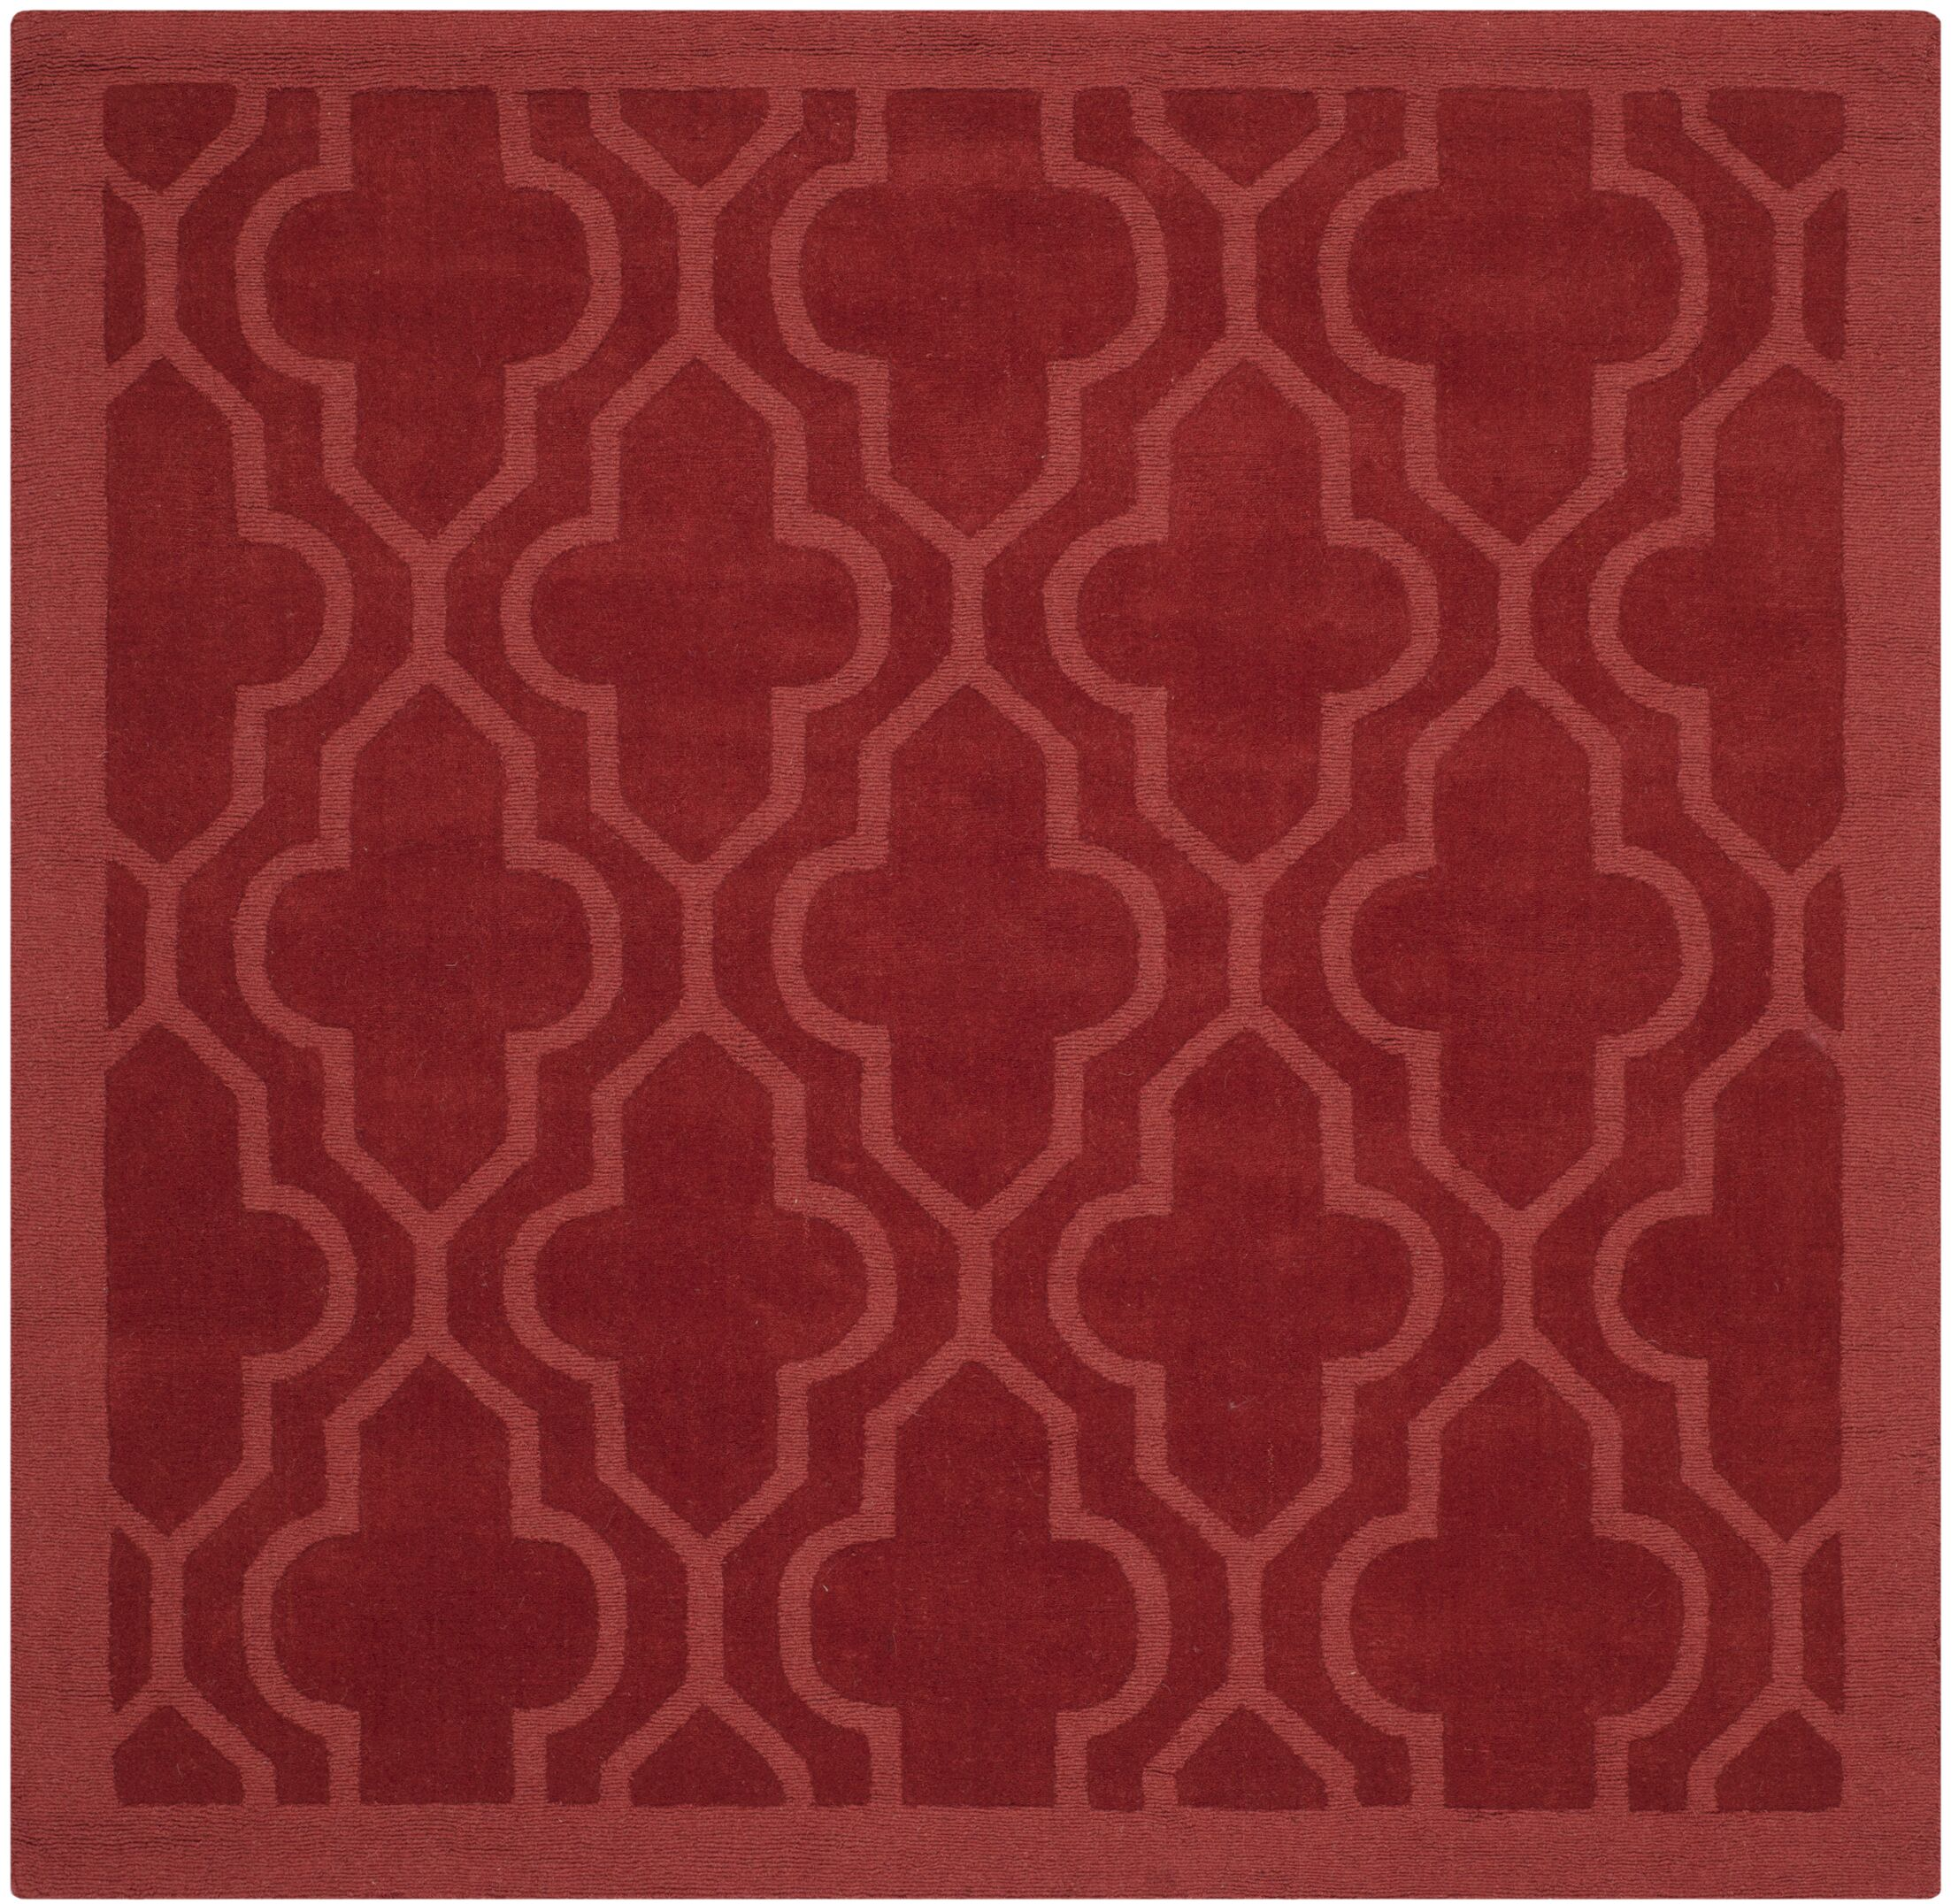 Casados Hand-Loomed Rust Area Rug Rug Size: Square 6' x 6'